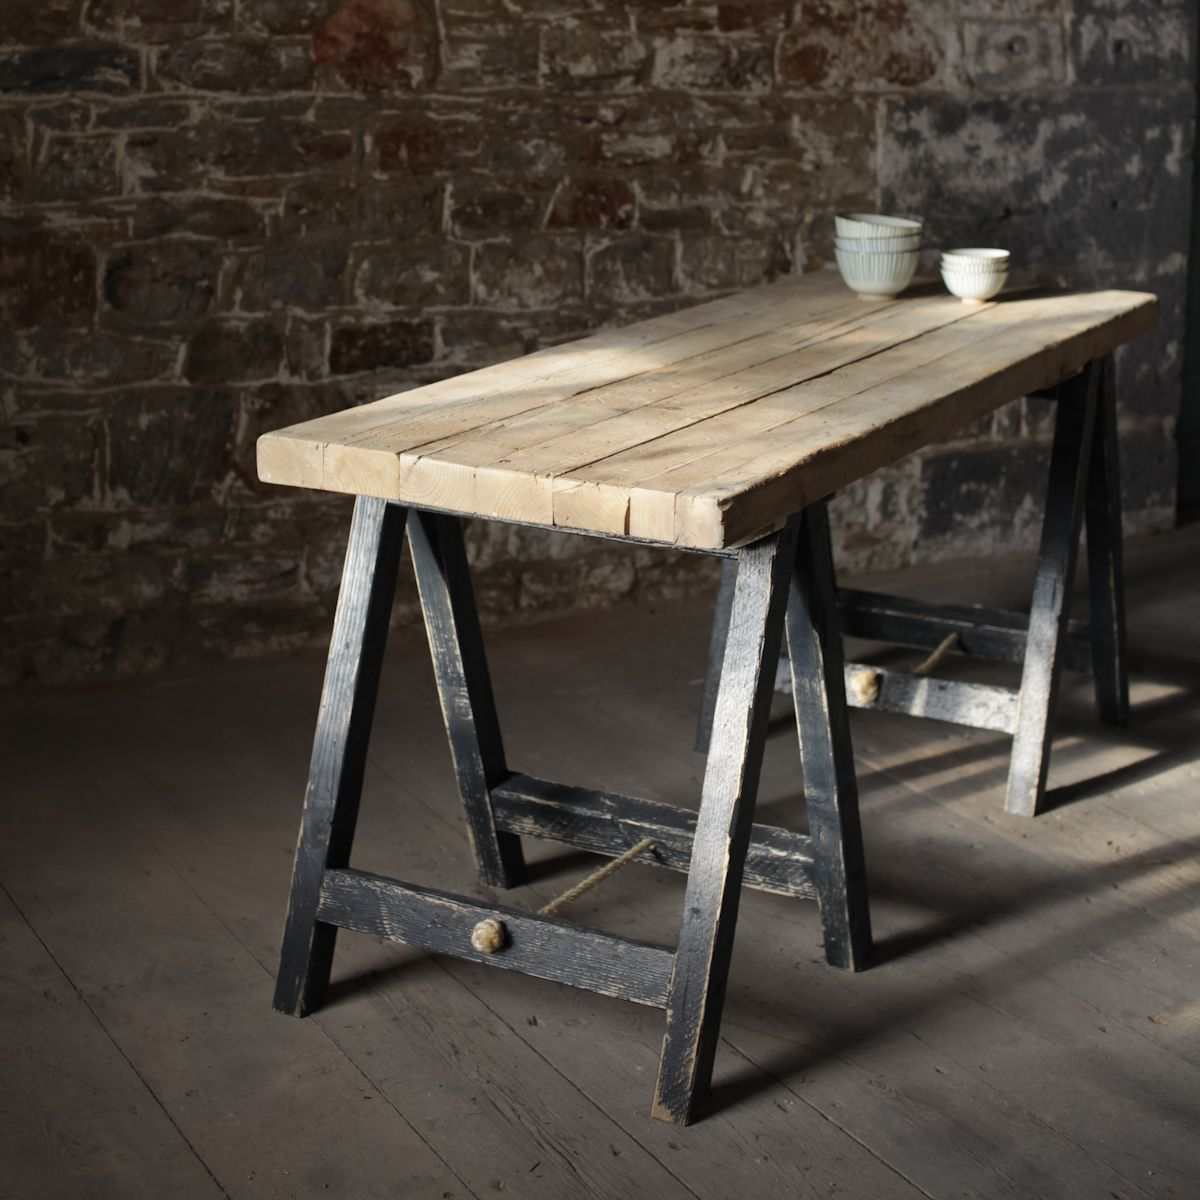 Our Rustic trestle tables being used